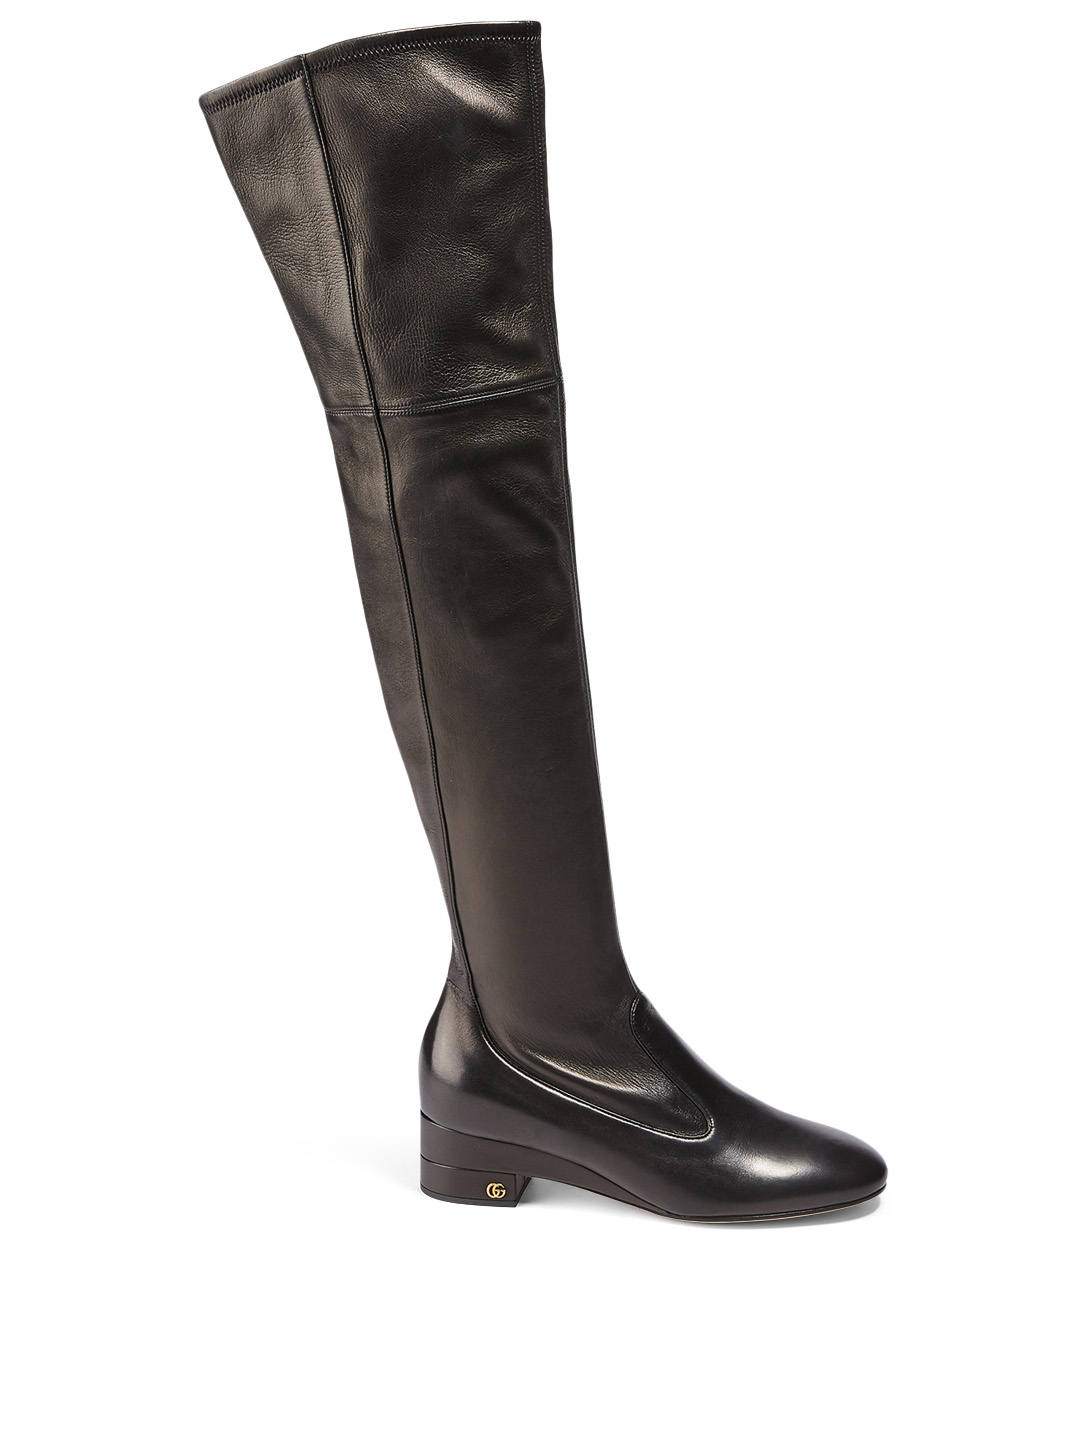 GUCCI Leather Over-The-Knee Boots Women's Black